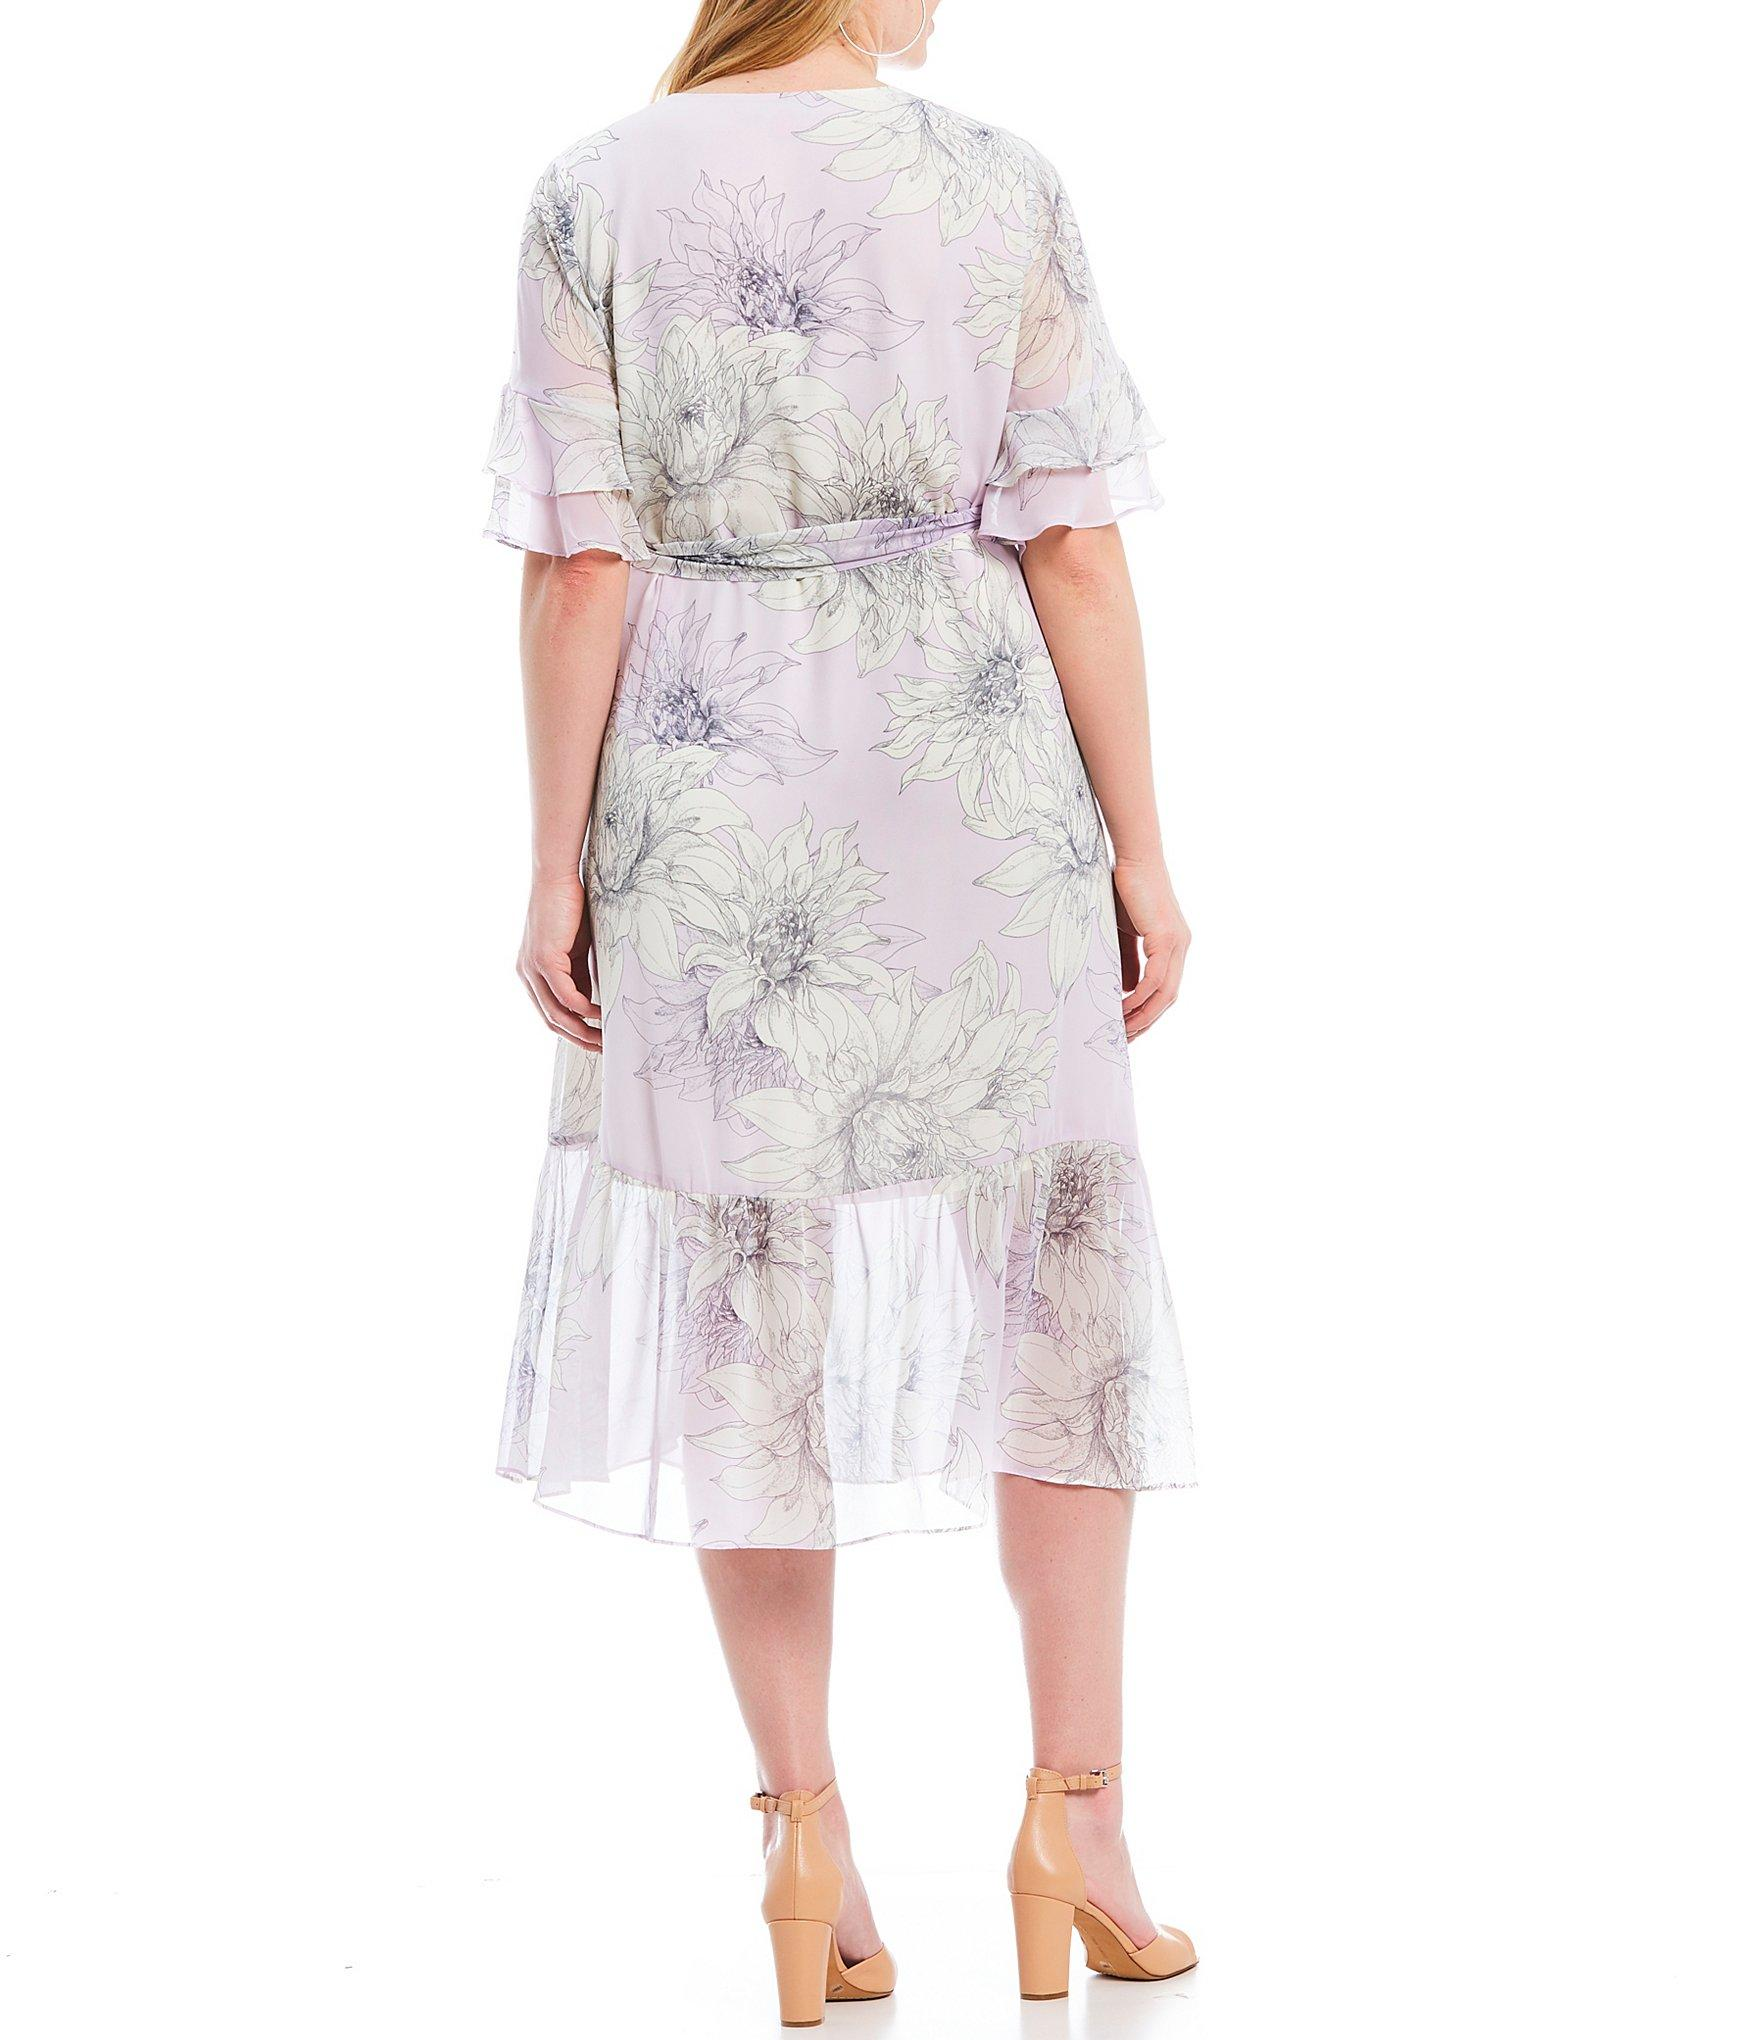 47513072e84 Vince Camuto - Multicolor Plus Size Floral Print Tiered Ruffle Short Sleeve  Midi Length Wrap Dress. View fullscreen